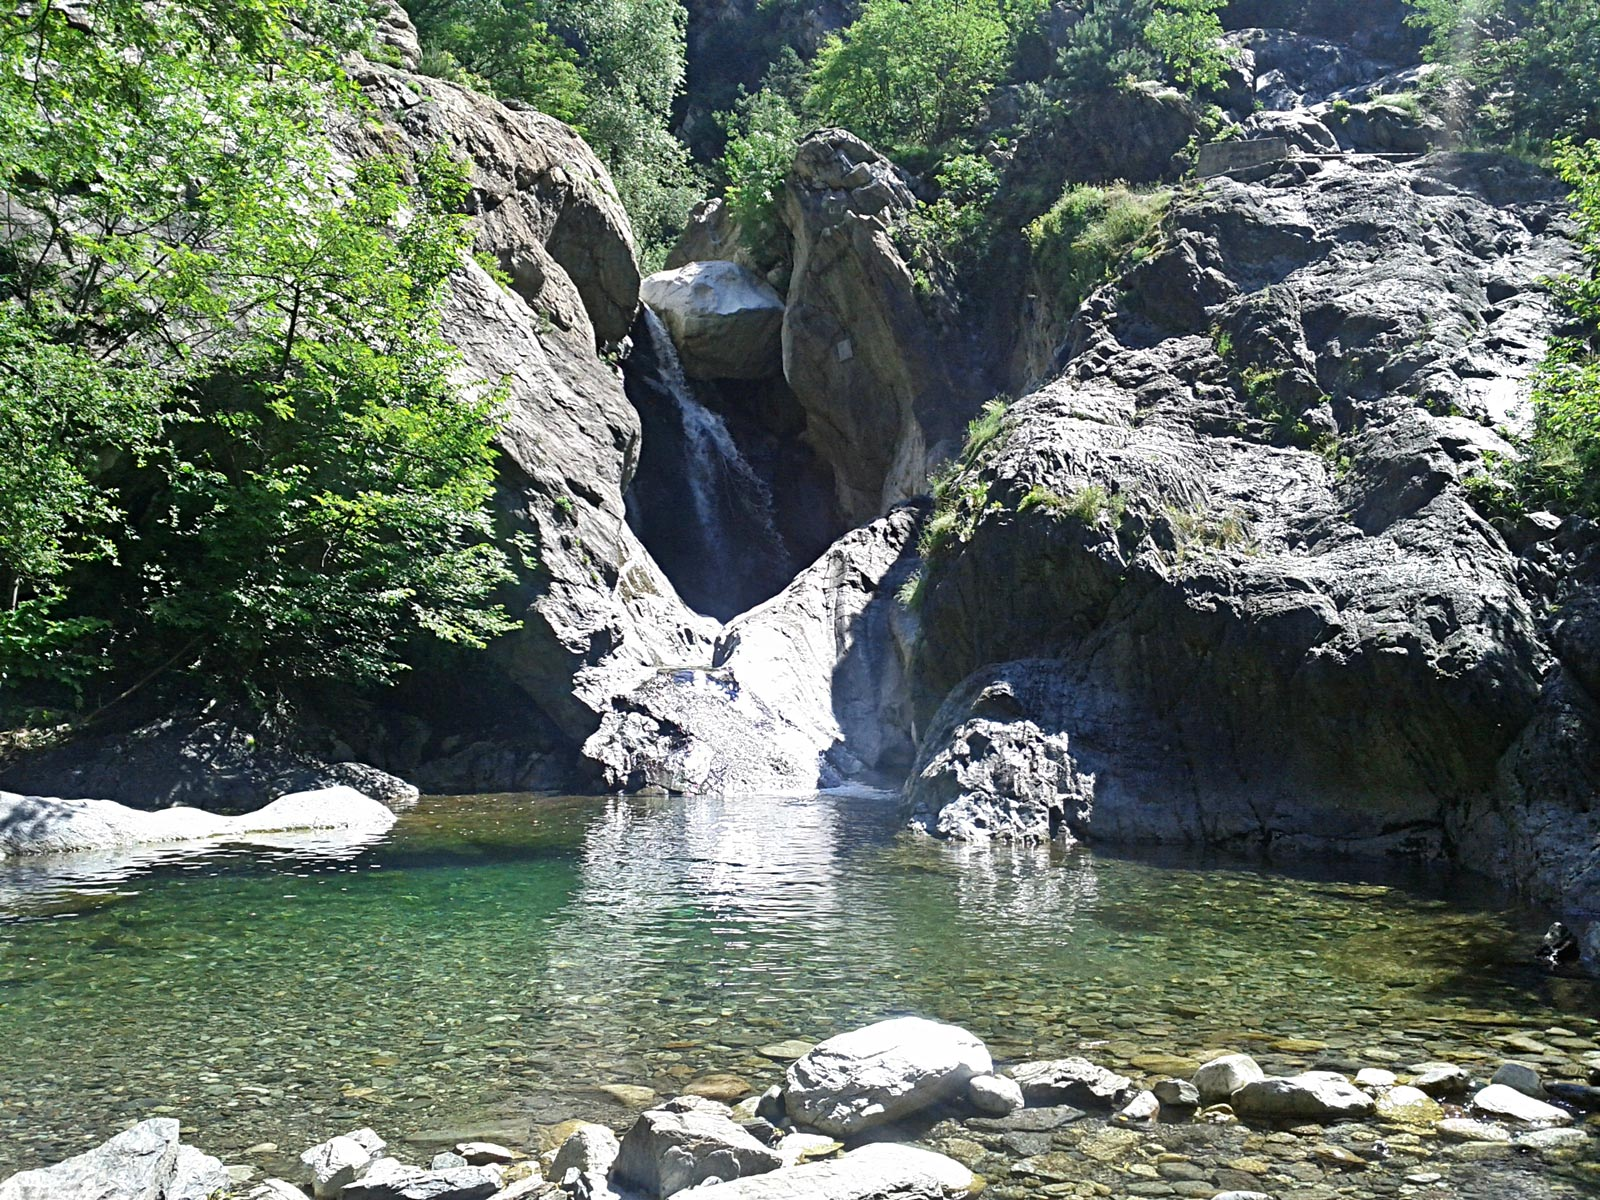 Suchurum Waterfall